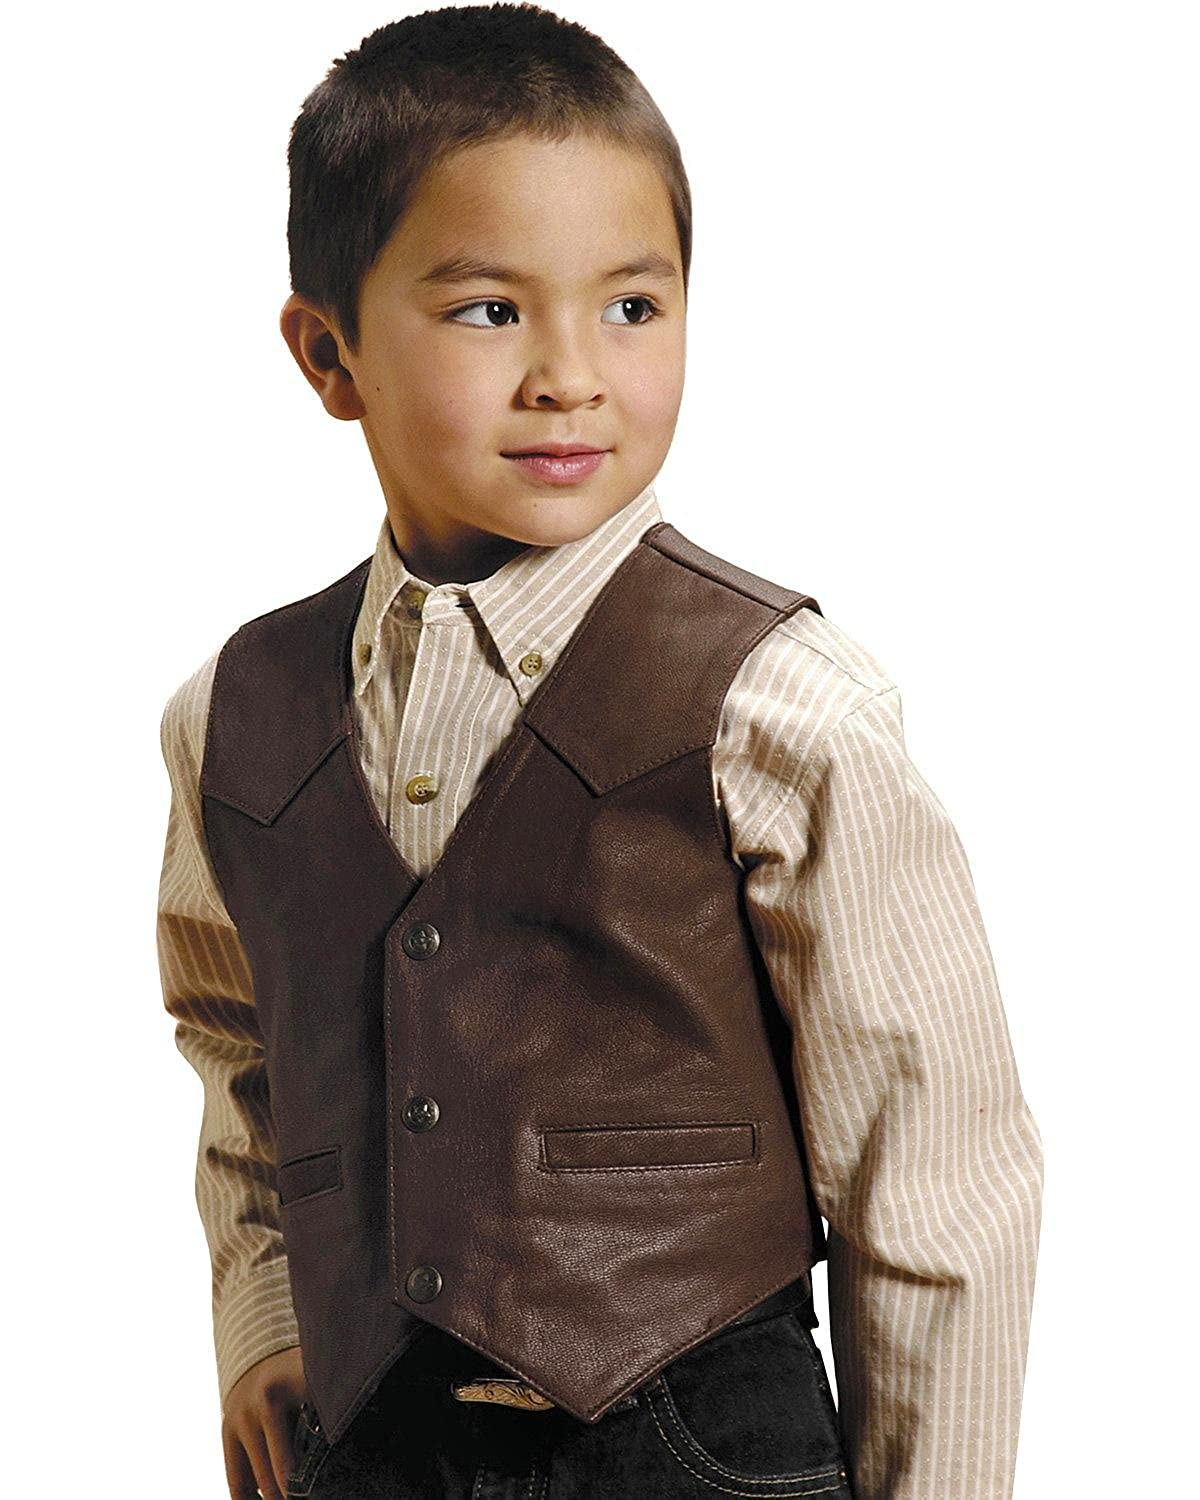 Victorian Kids Costumes & Shoes- Girls, Boys, Baby, Toddler Roper Boys Western Nappa Leather Vest - 02-094-0510-0502 Br $49.74 AT vintagedancer.com